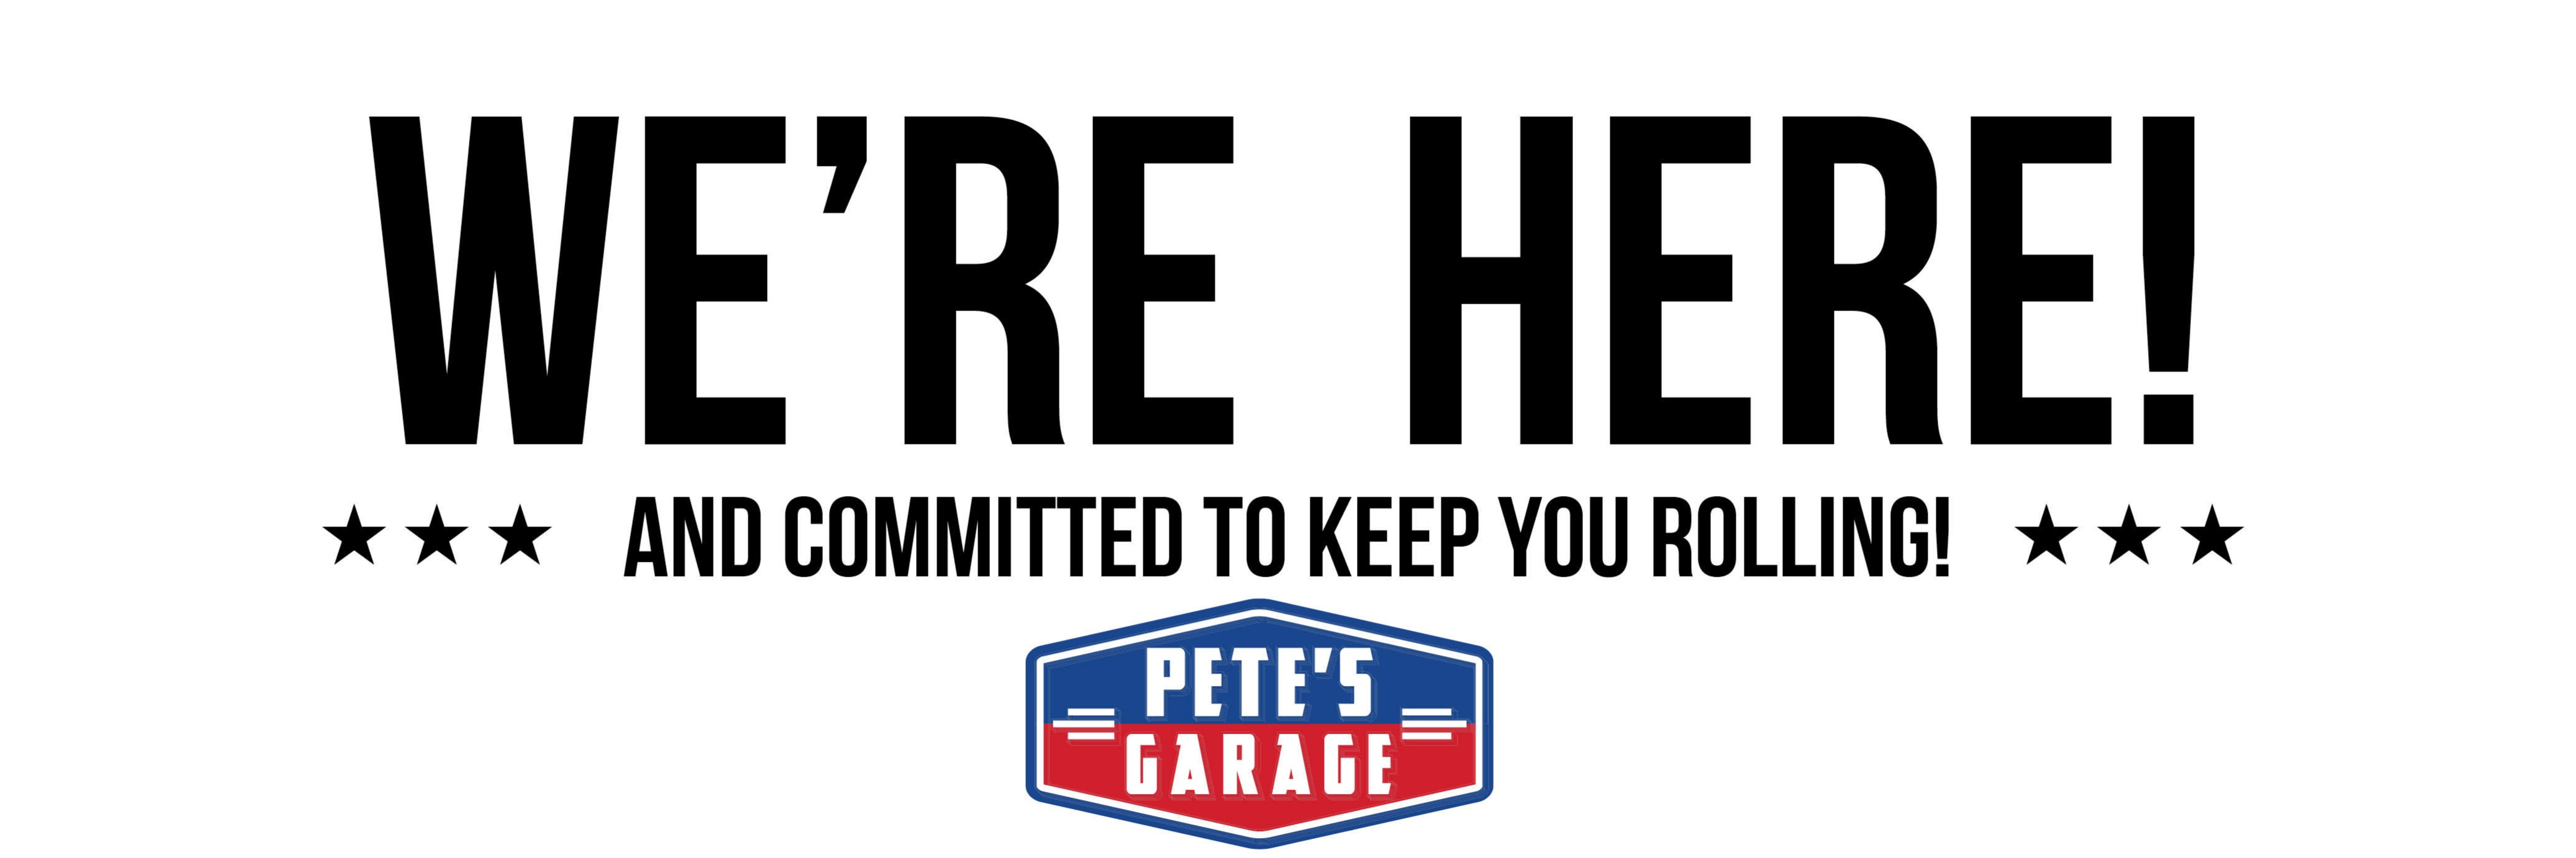 We're here and committed to keep you rolling!